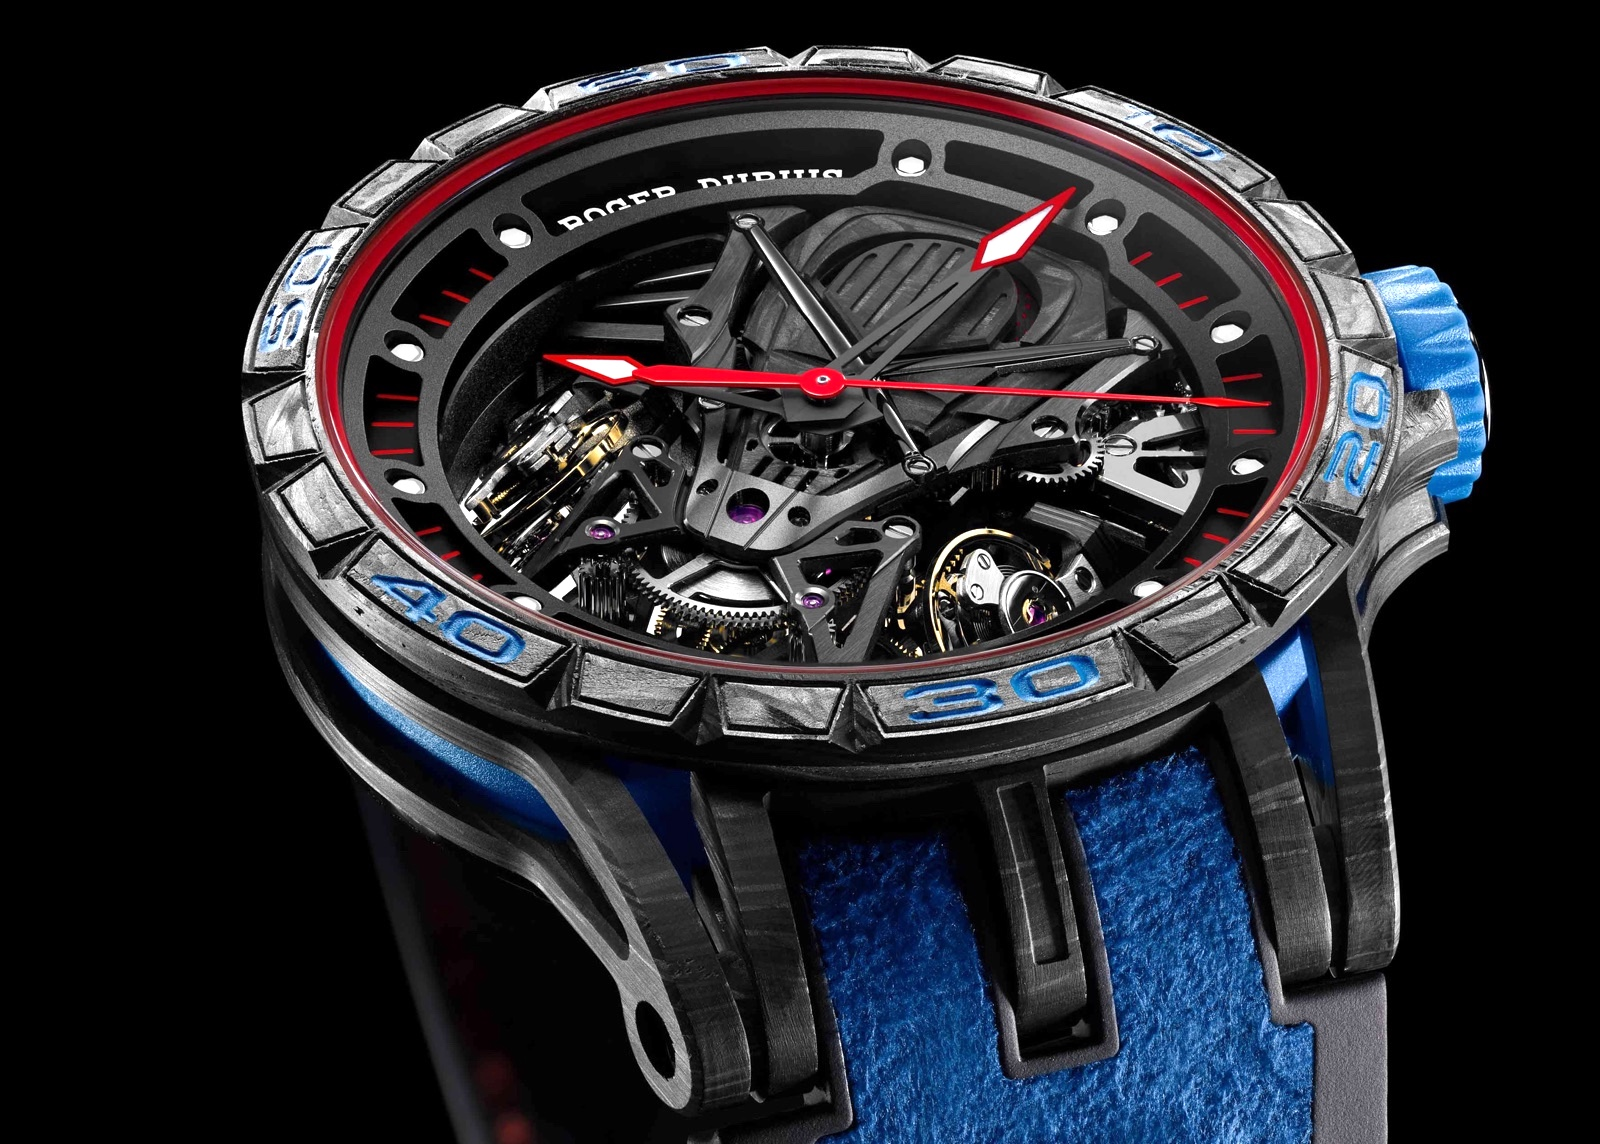 Roger Dubuis Excalibur Aventador S Blue SIHH 2018